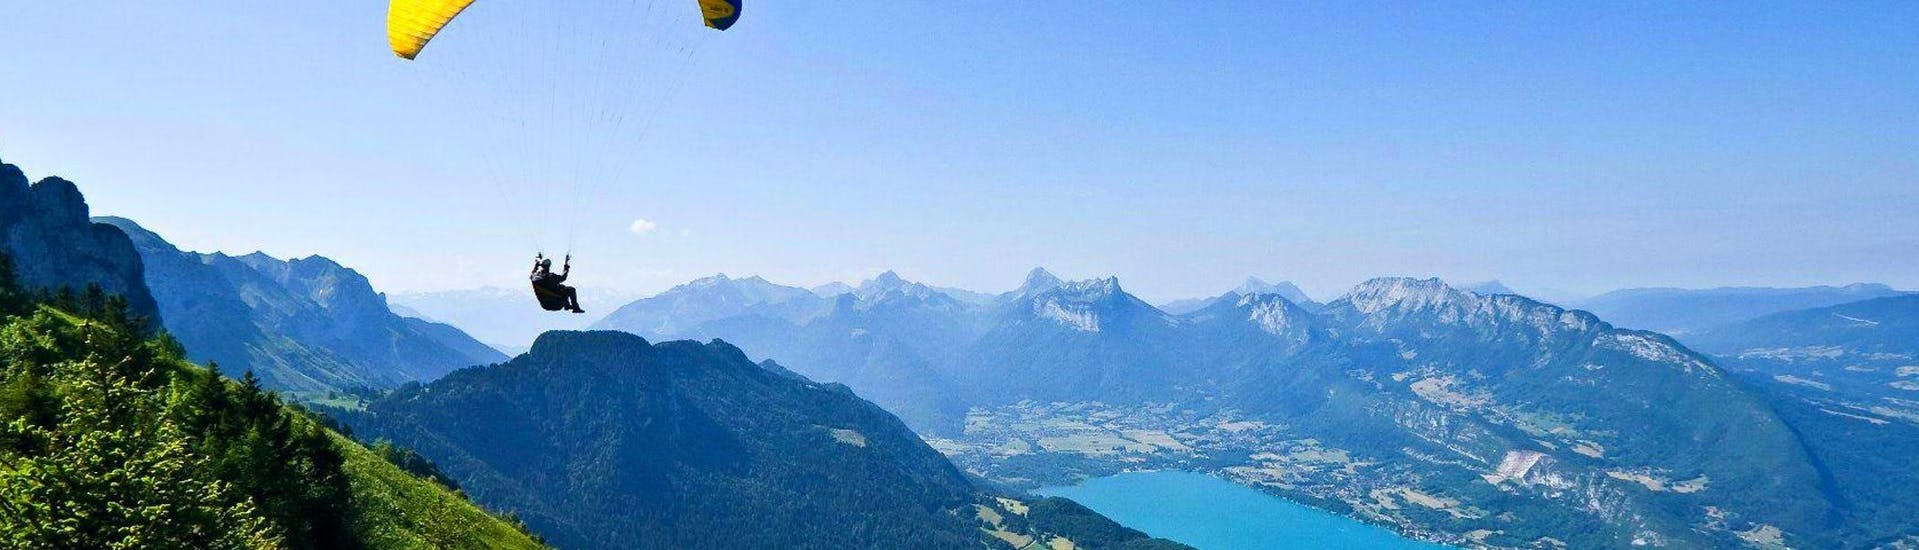 A person is enjoying his Tandem Paragliding in Lake Annecy - Discovery activity with Flyeo.